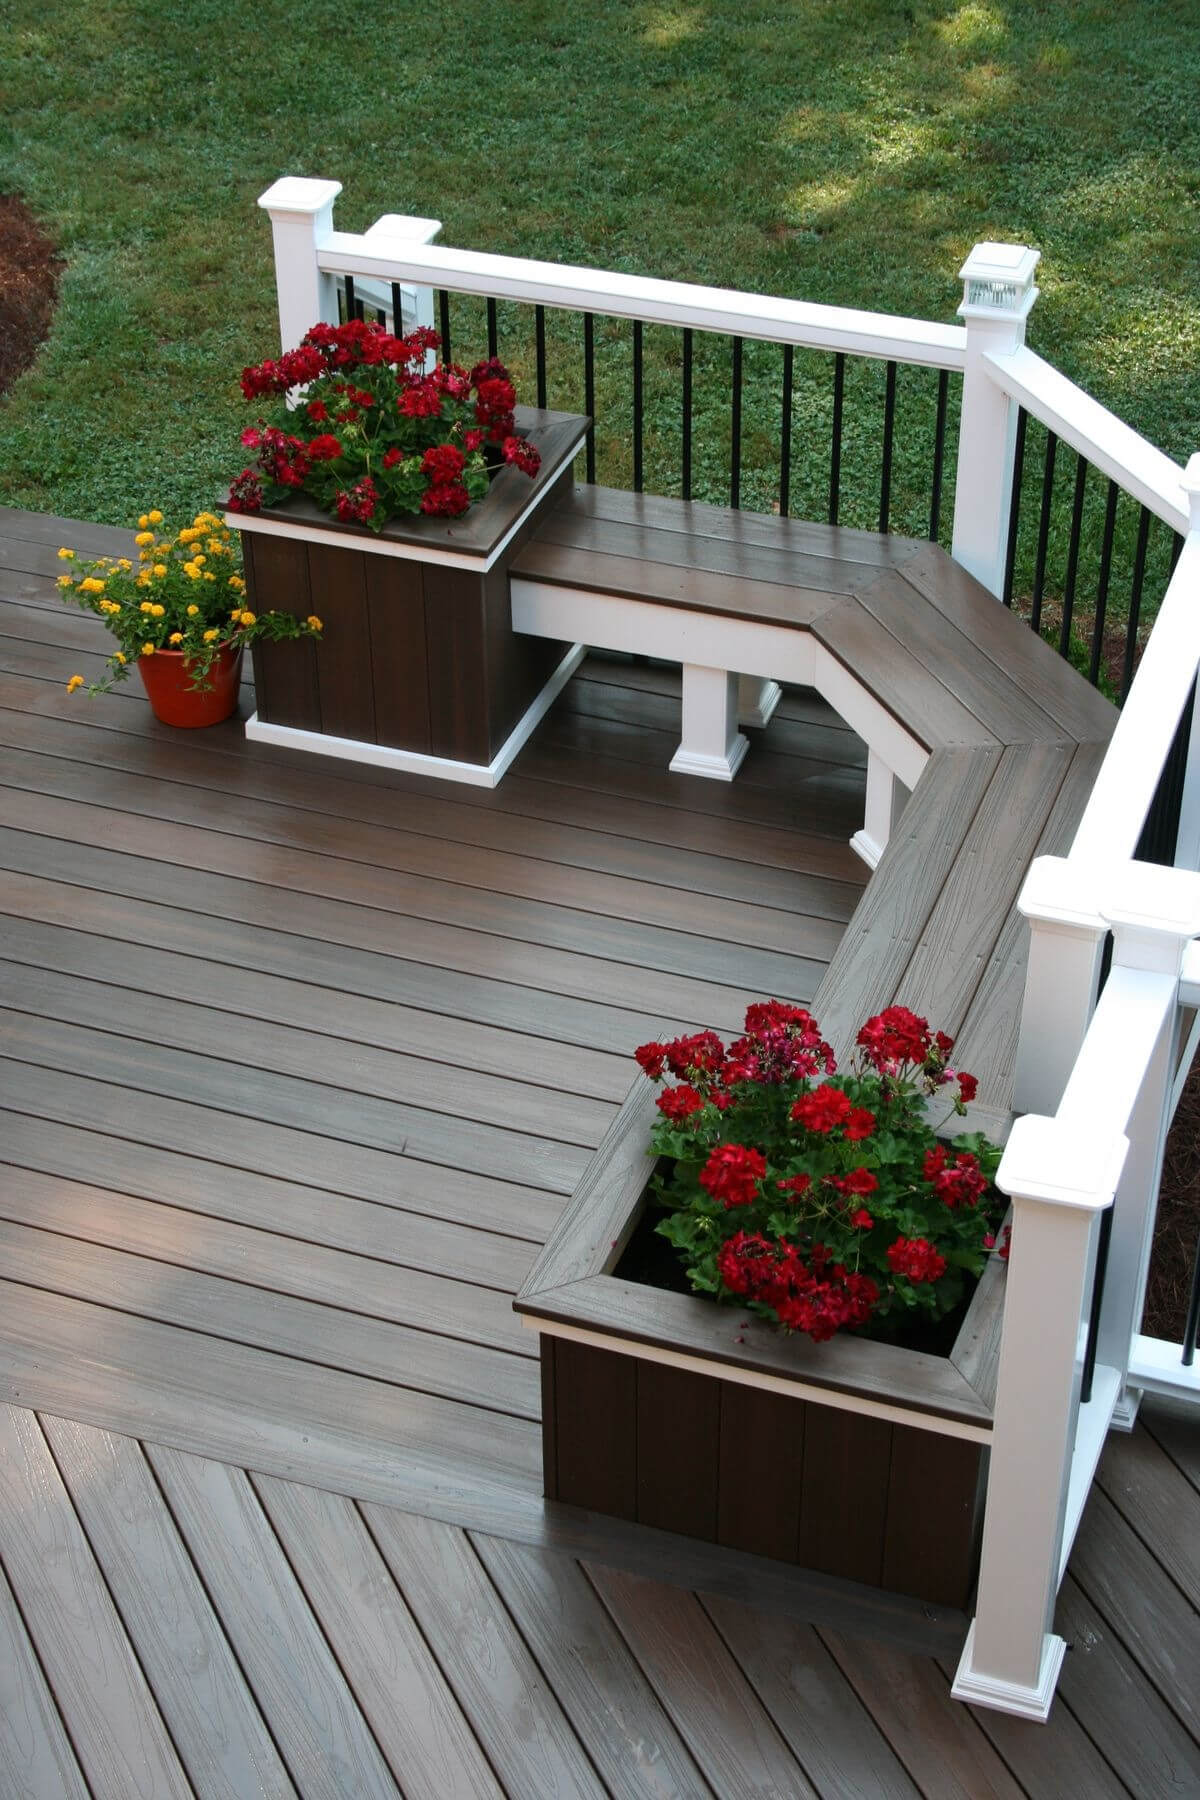 Amazing Deck Bench With Built In Planters